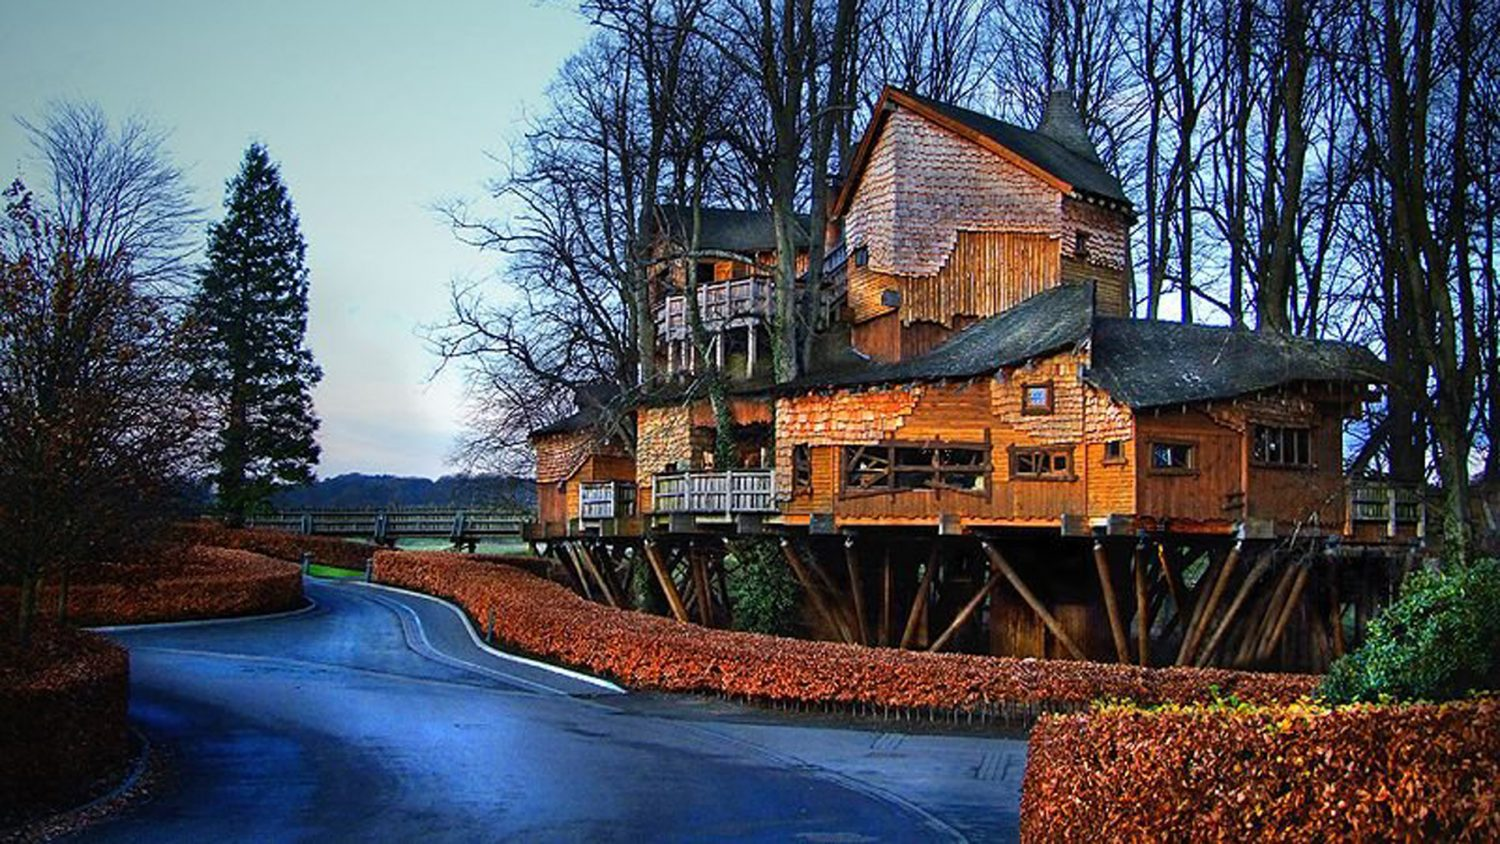 Idaho House Treehouse Restaurant Alnwick